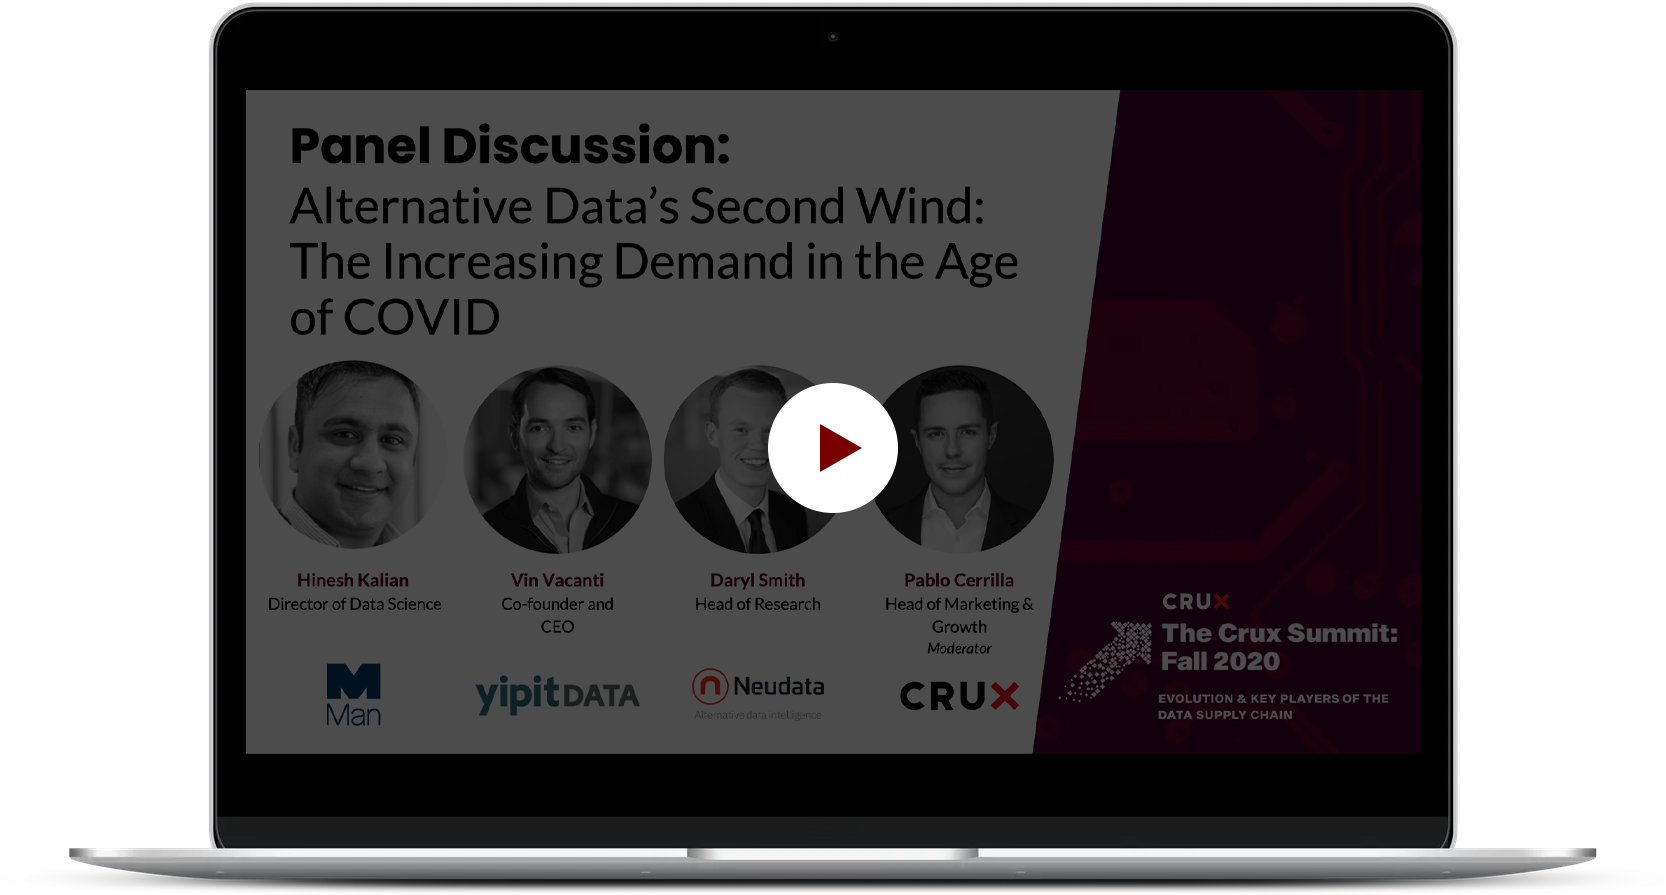 Crux_TCS_PanelDiscussion+AlternativeDatasSecondWind+TheIncreasingDemandintheAgeofCovid_05